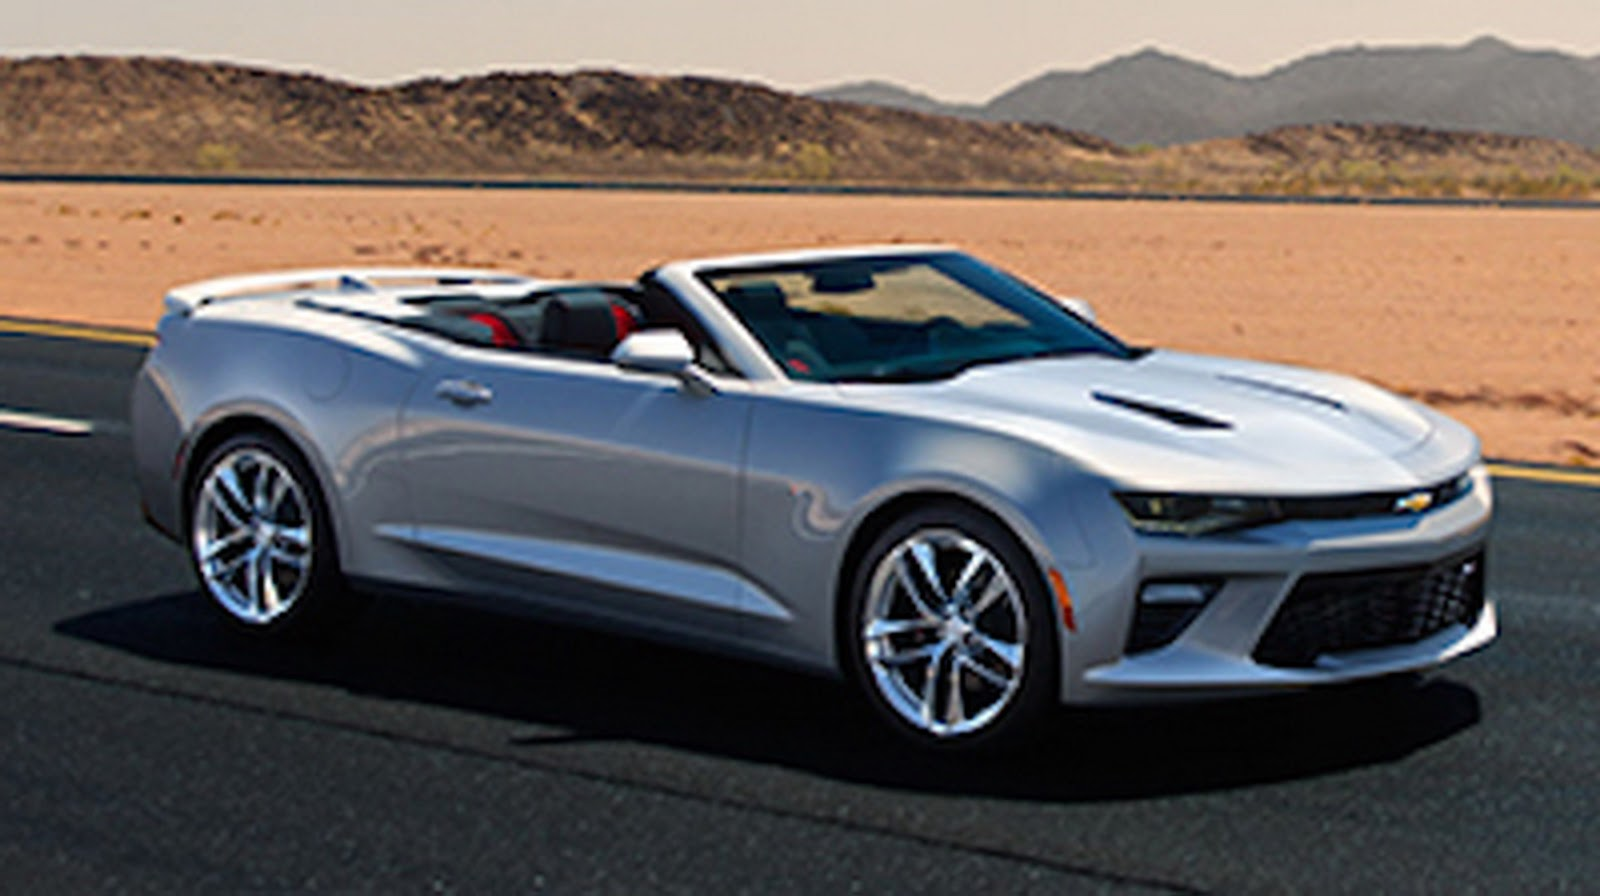 new 2016 camaro convertible photos appear on chevy 39 s site carscoops. Black Bedroom Furniture Sets. Home Design Ideas